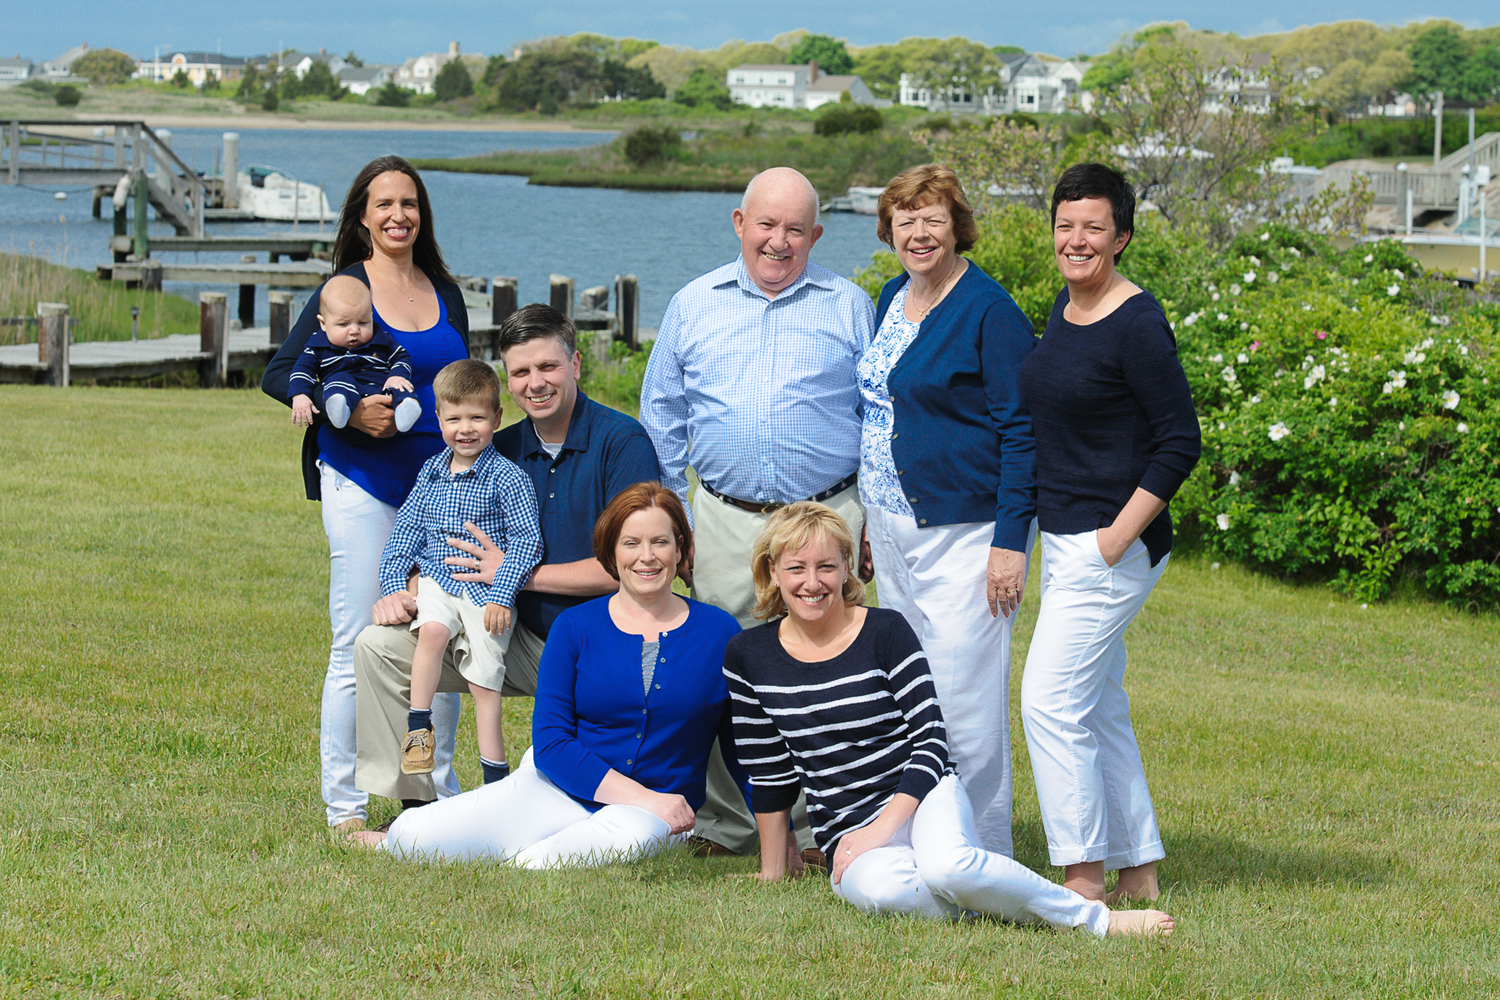 An early morning family reunion photography session in the backyard of a rental house in East Falmouth.